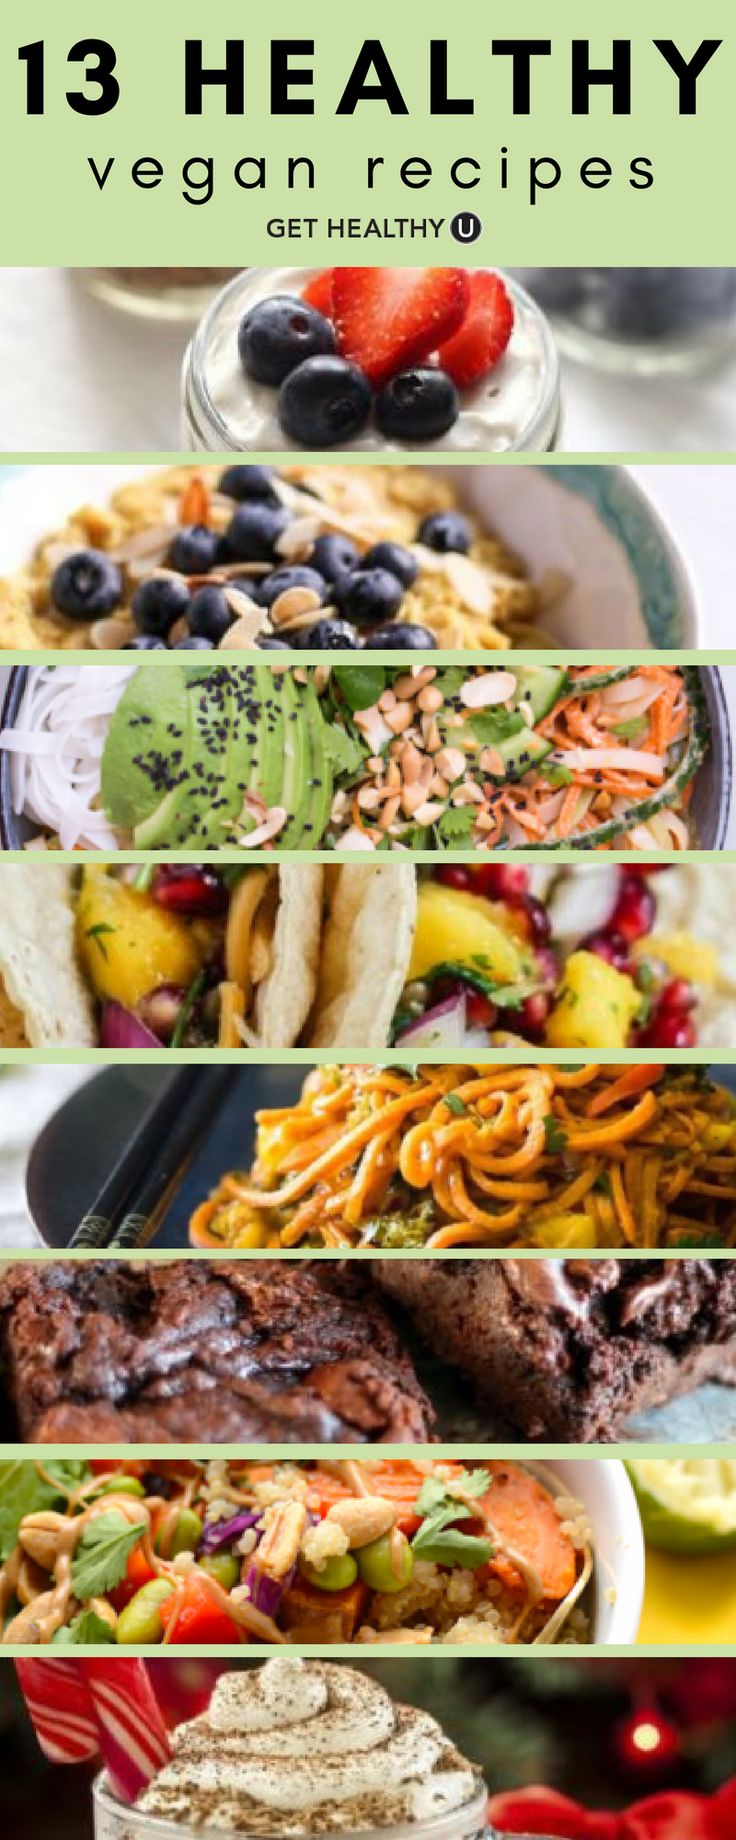 Check out these 13 healthy vegan recipes, from breakfast to dessert! If you're new to the plant-based lifestyle, or are already vegan and are seeking new recipes, these are for YOU! They're not only dairy-free and meat-free, but they're also nutritious and delicious! #Vegan #VeganRecipes